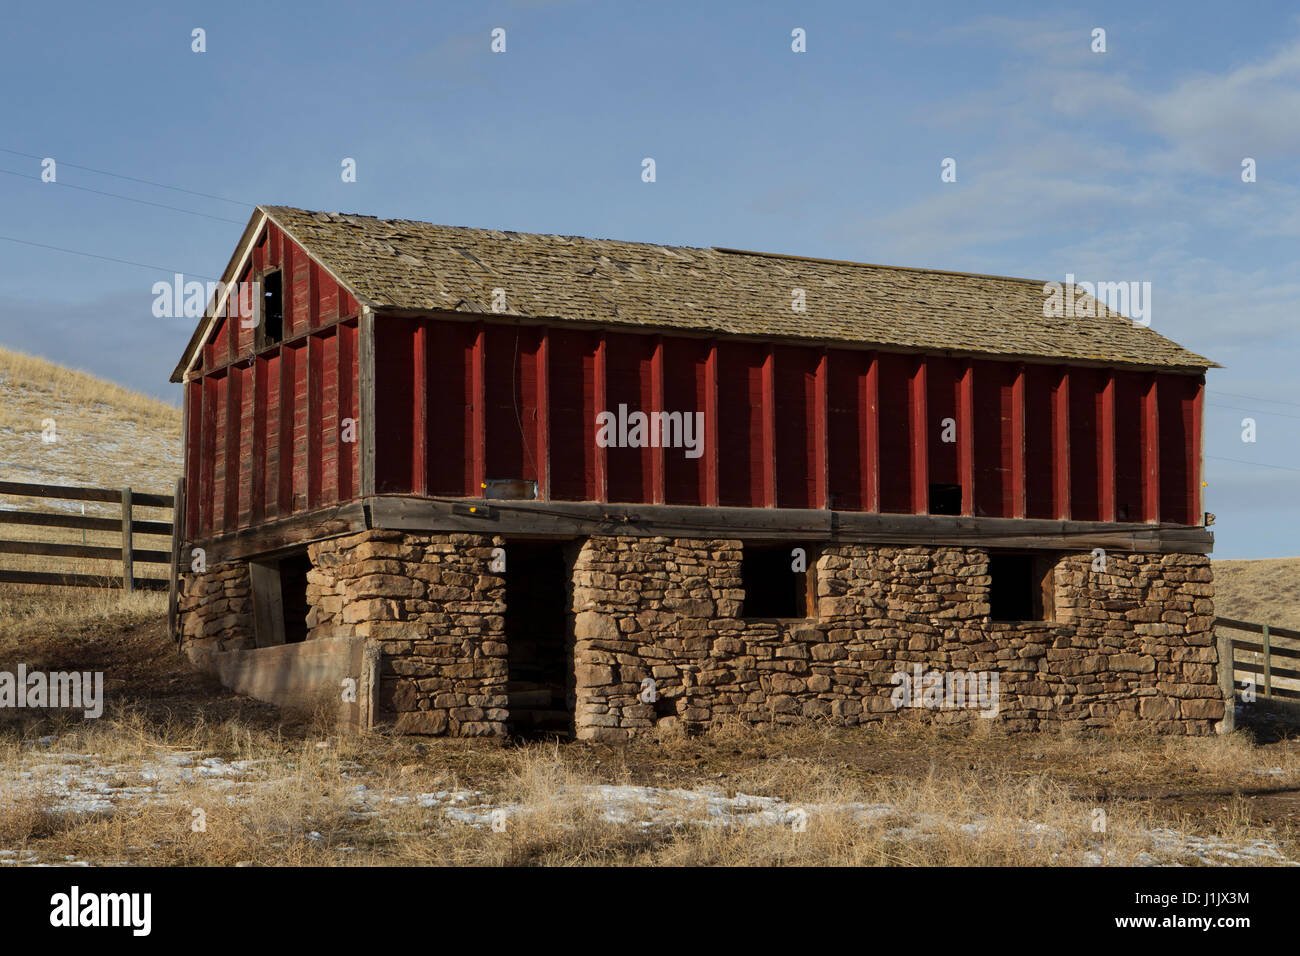 Old red granary. Fading paint, missing shingles, general disrepair give character to exposed frame and stone building. - Stock Image